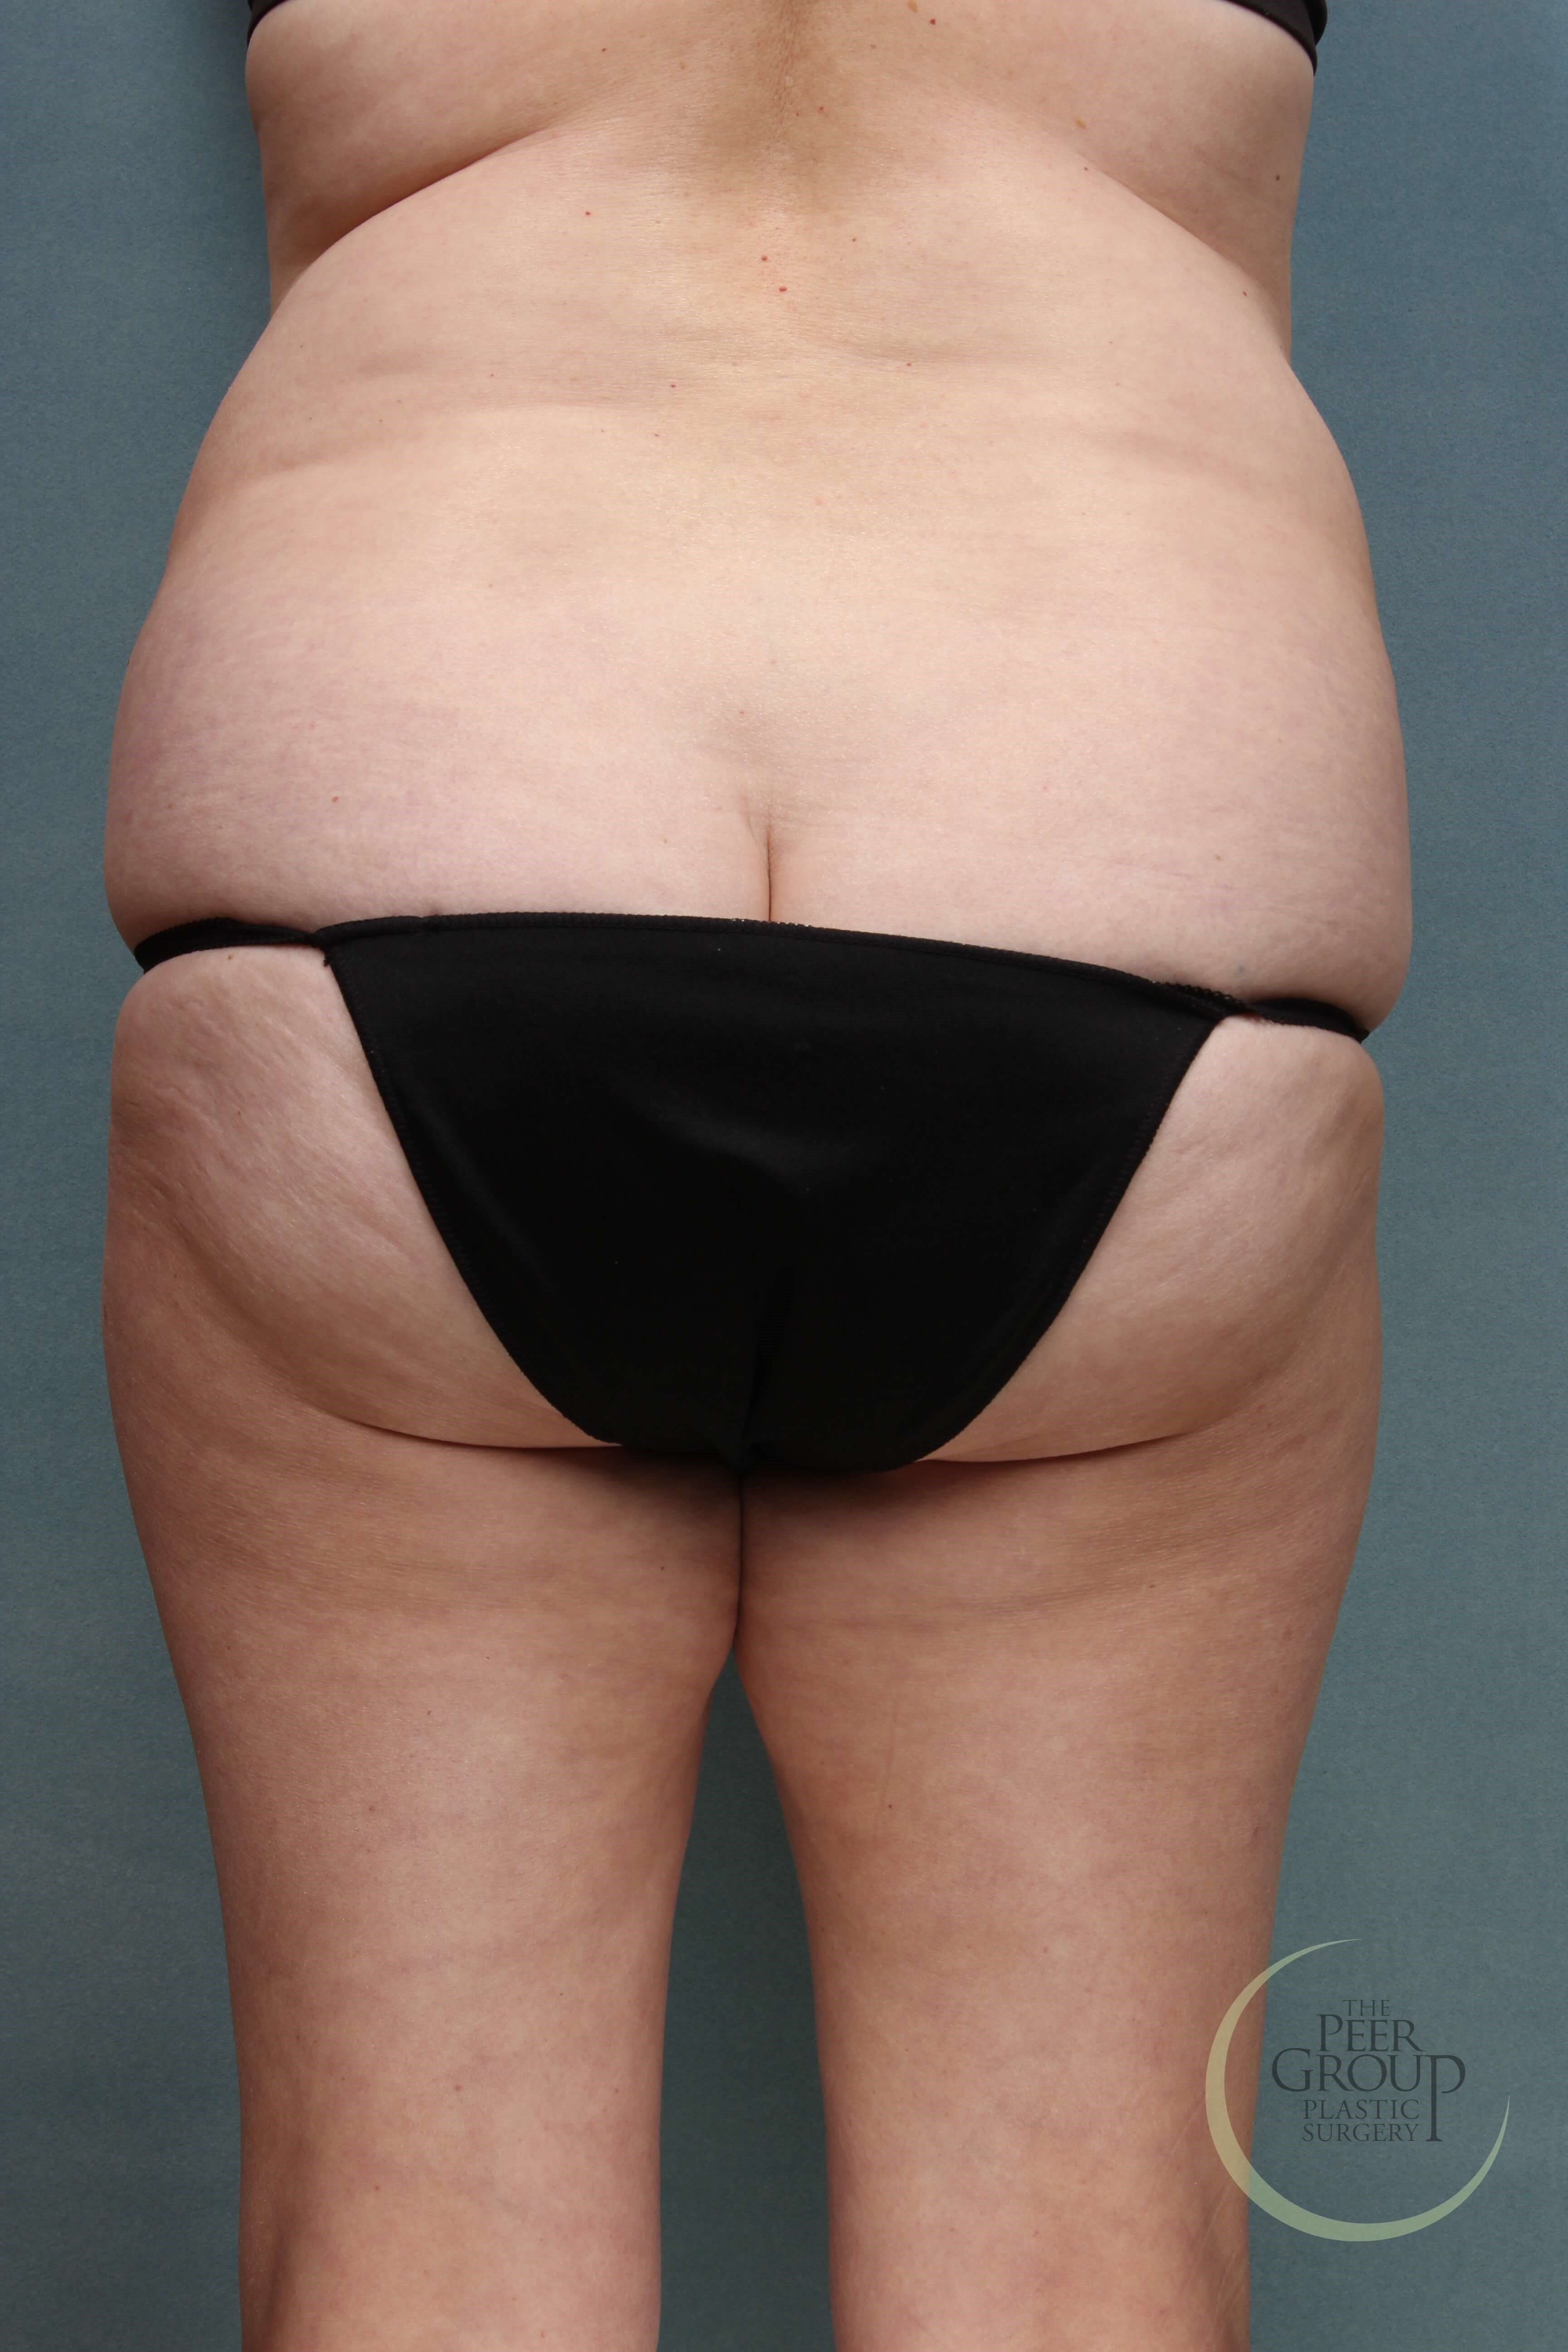 Liposuction New Jersey Before